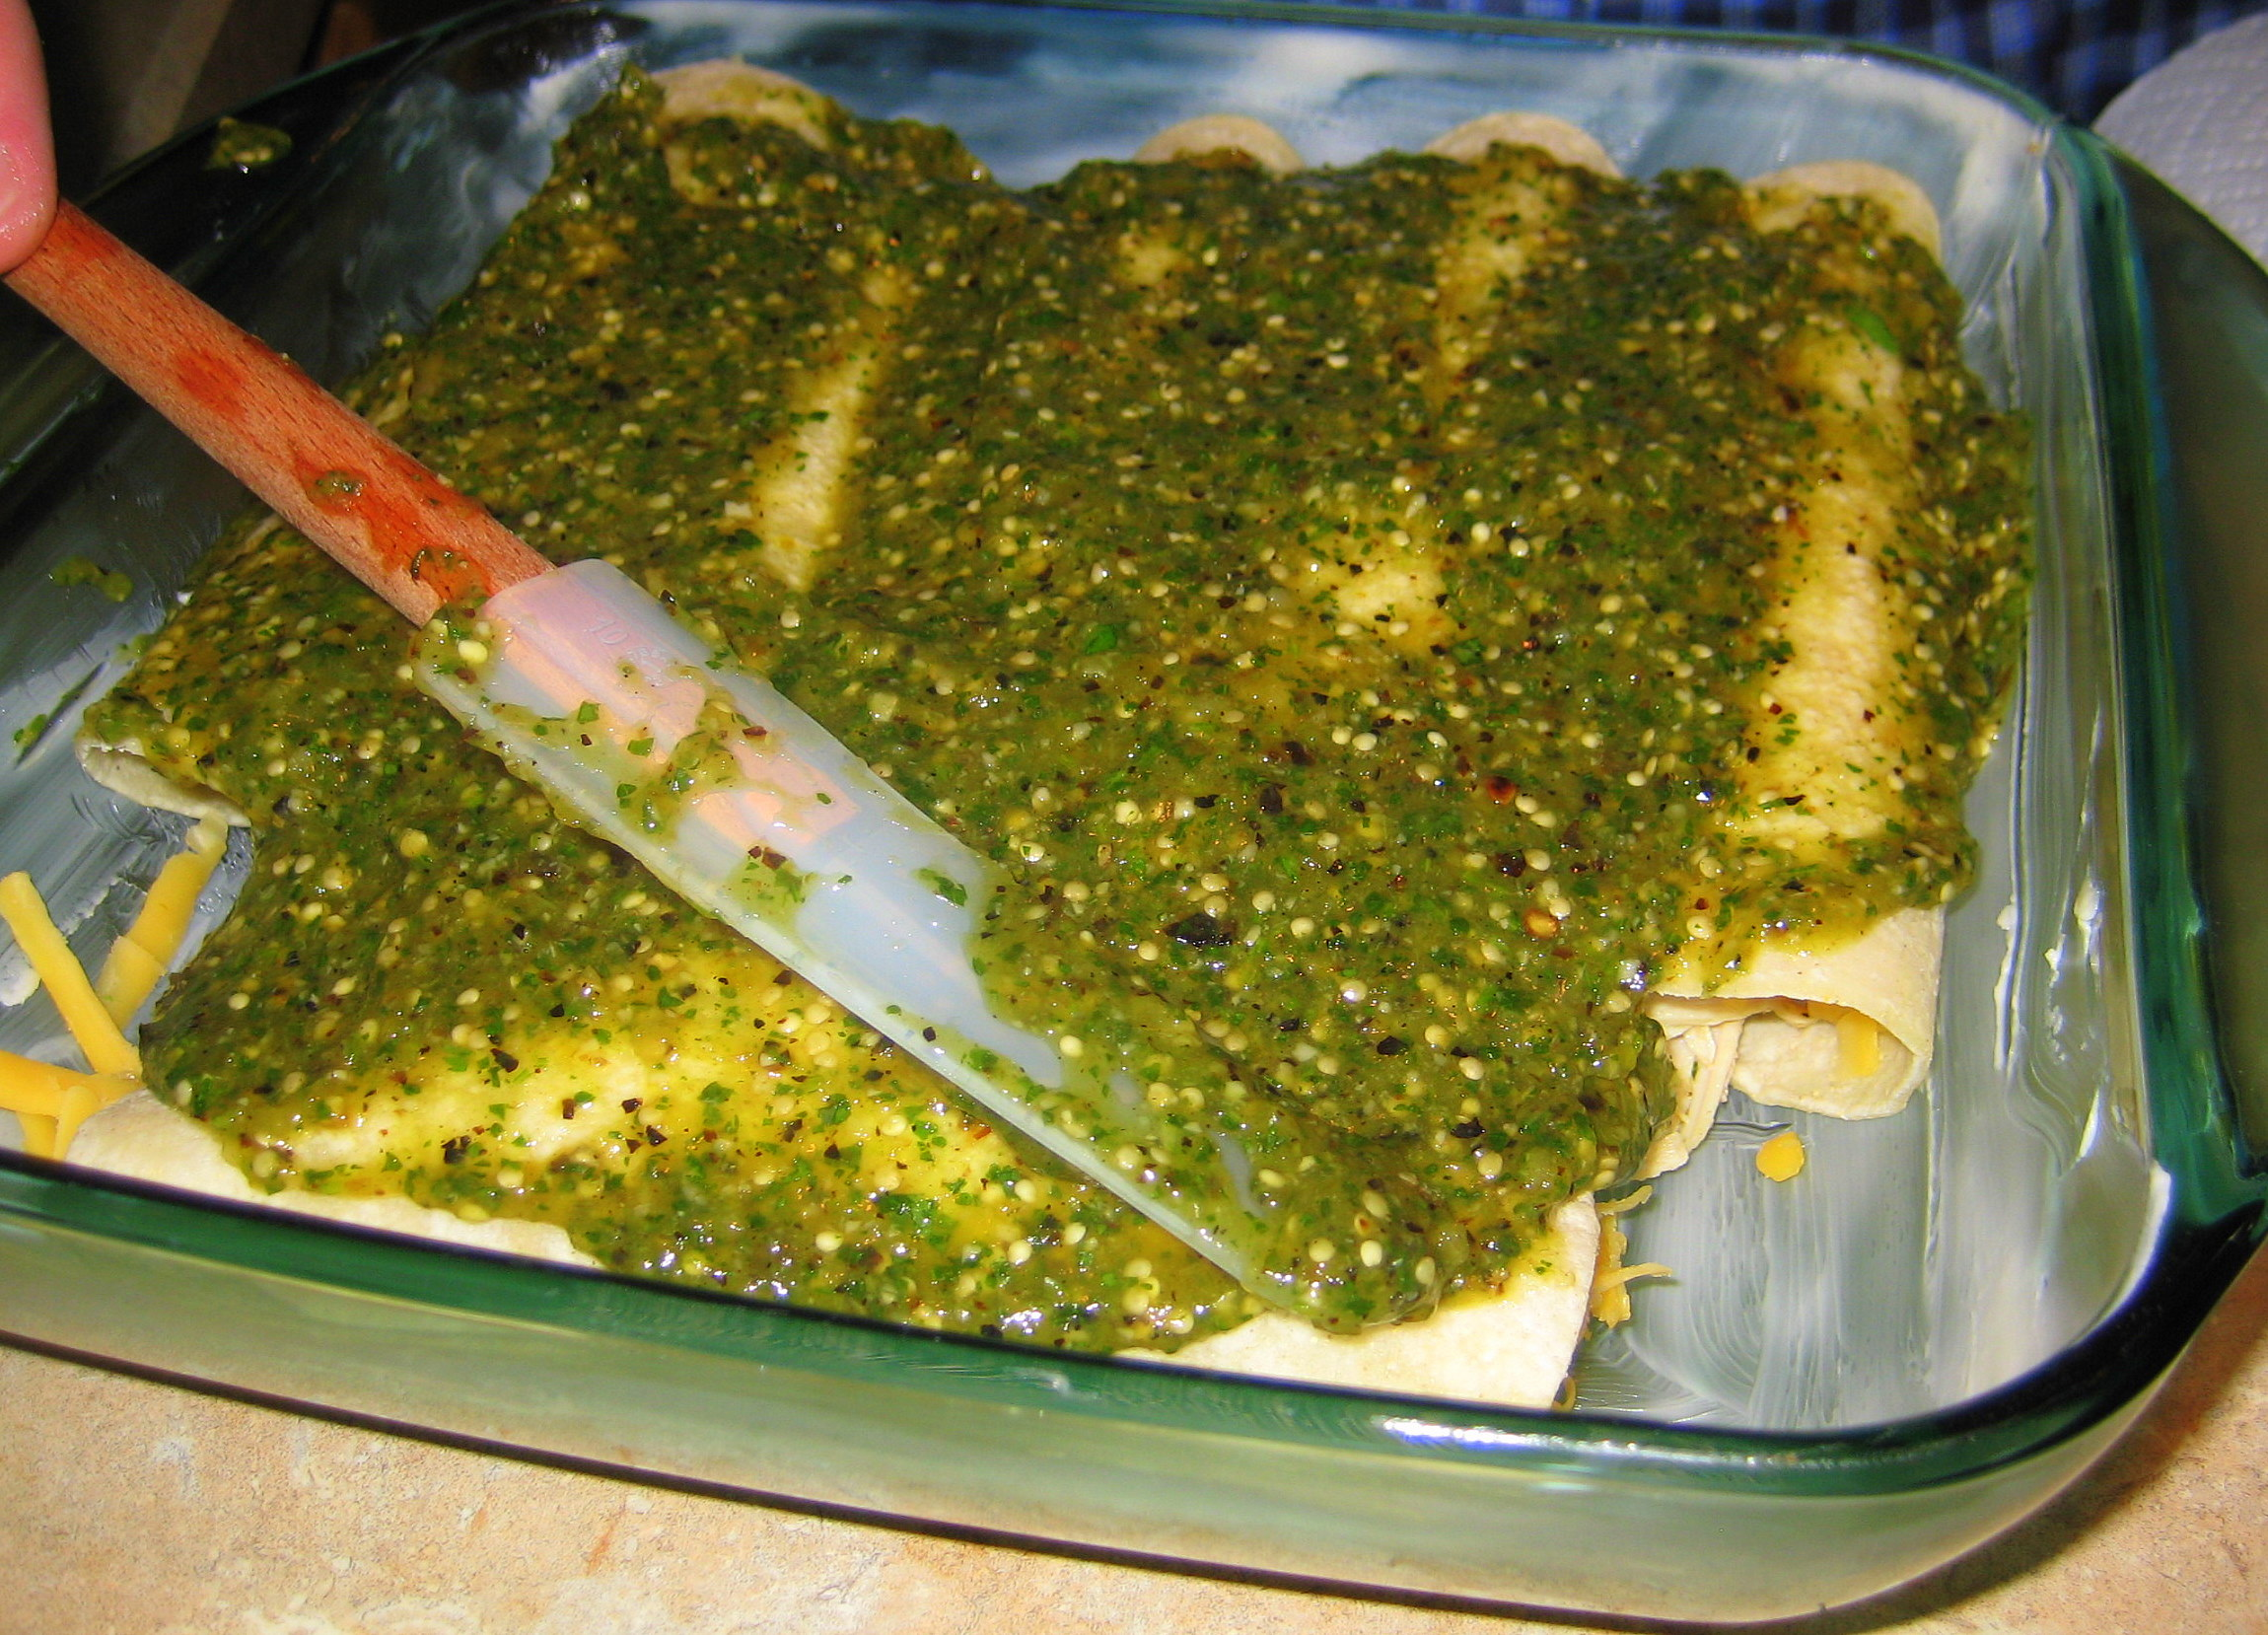 Don't use store-bought green sauce!